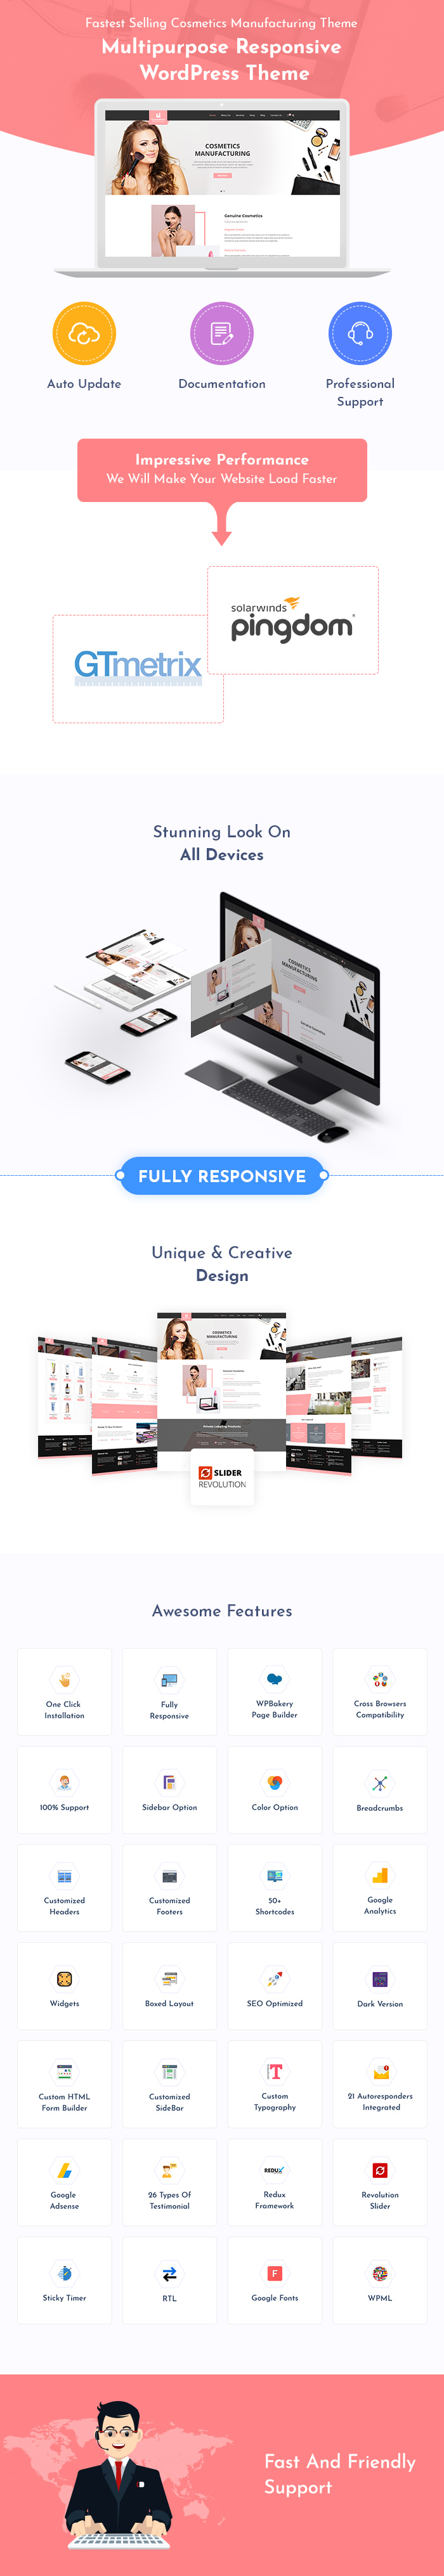 Cosmetics Manufacturing WordPress Themes